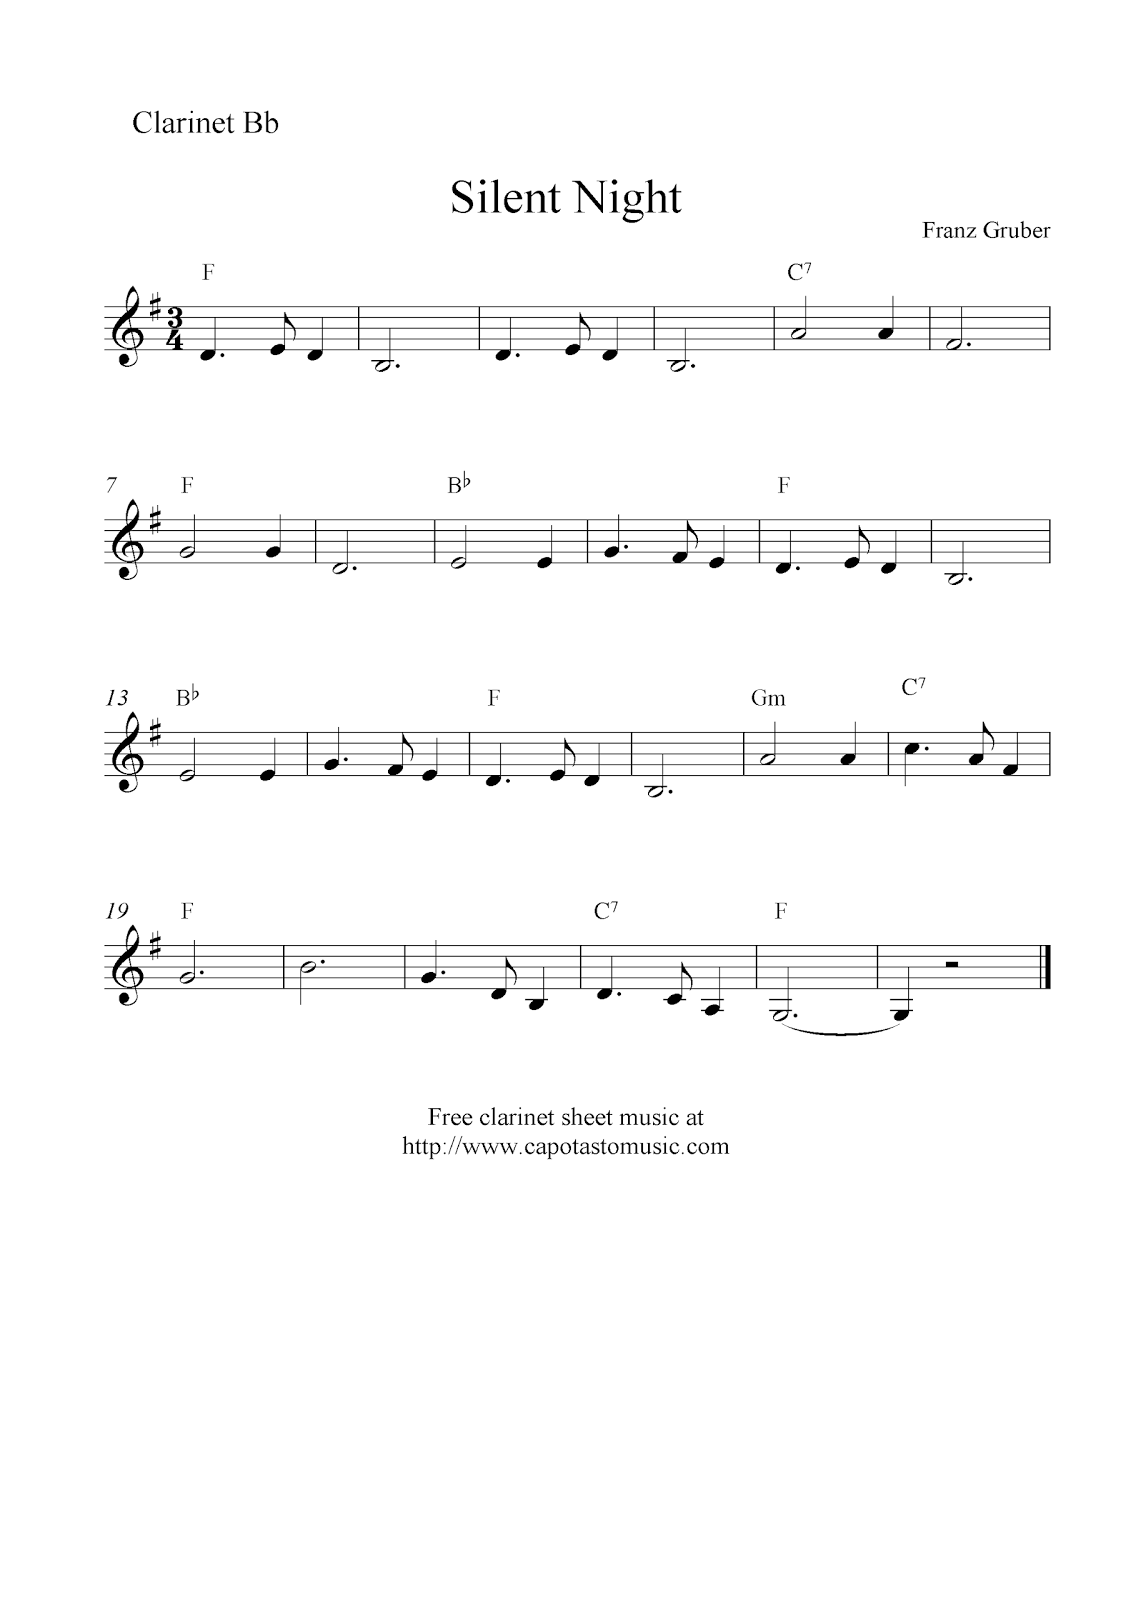 Silent night free christmas clarinet sheet music notes